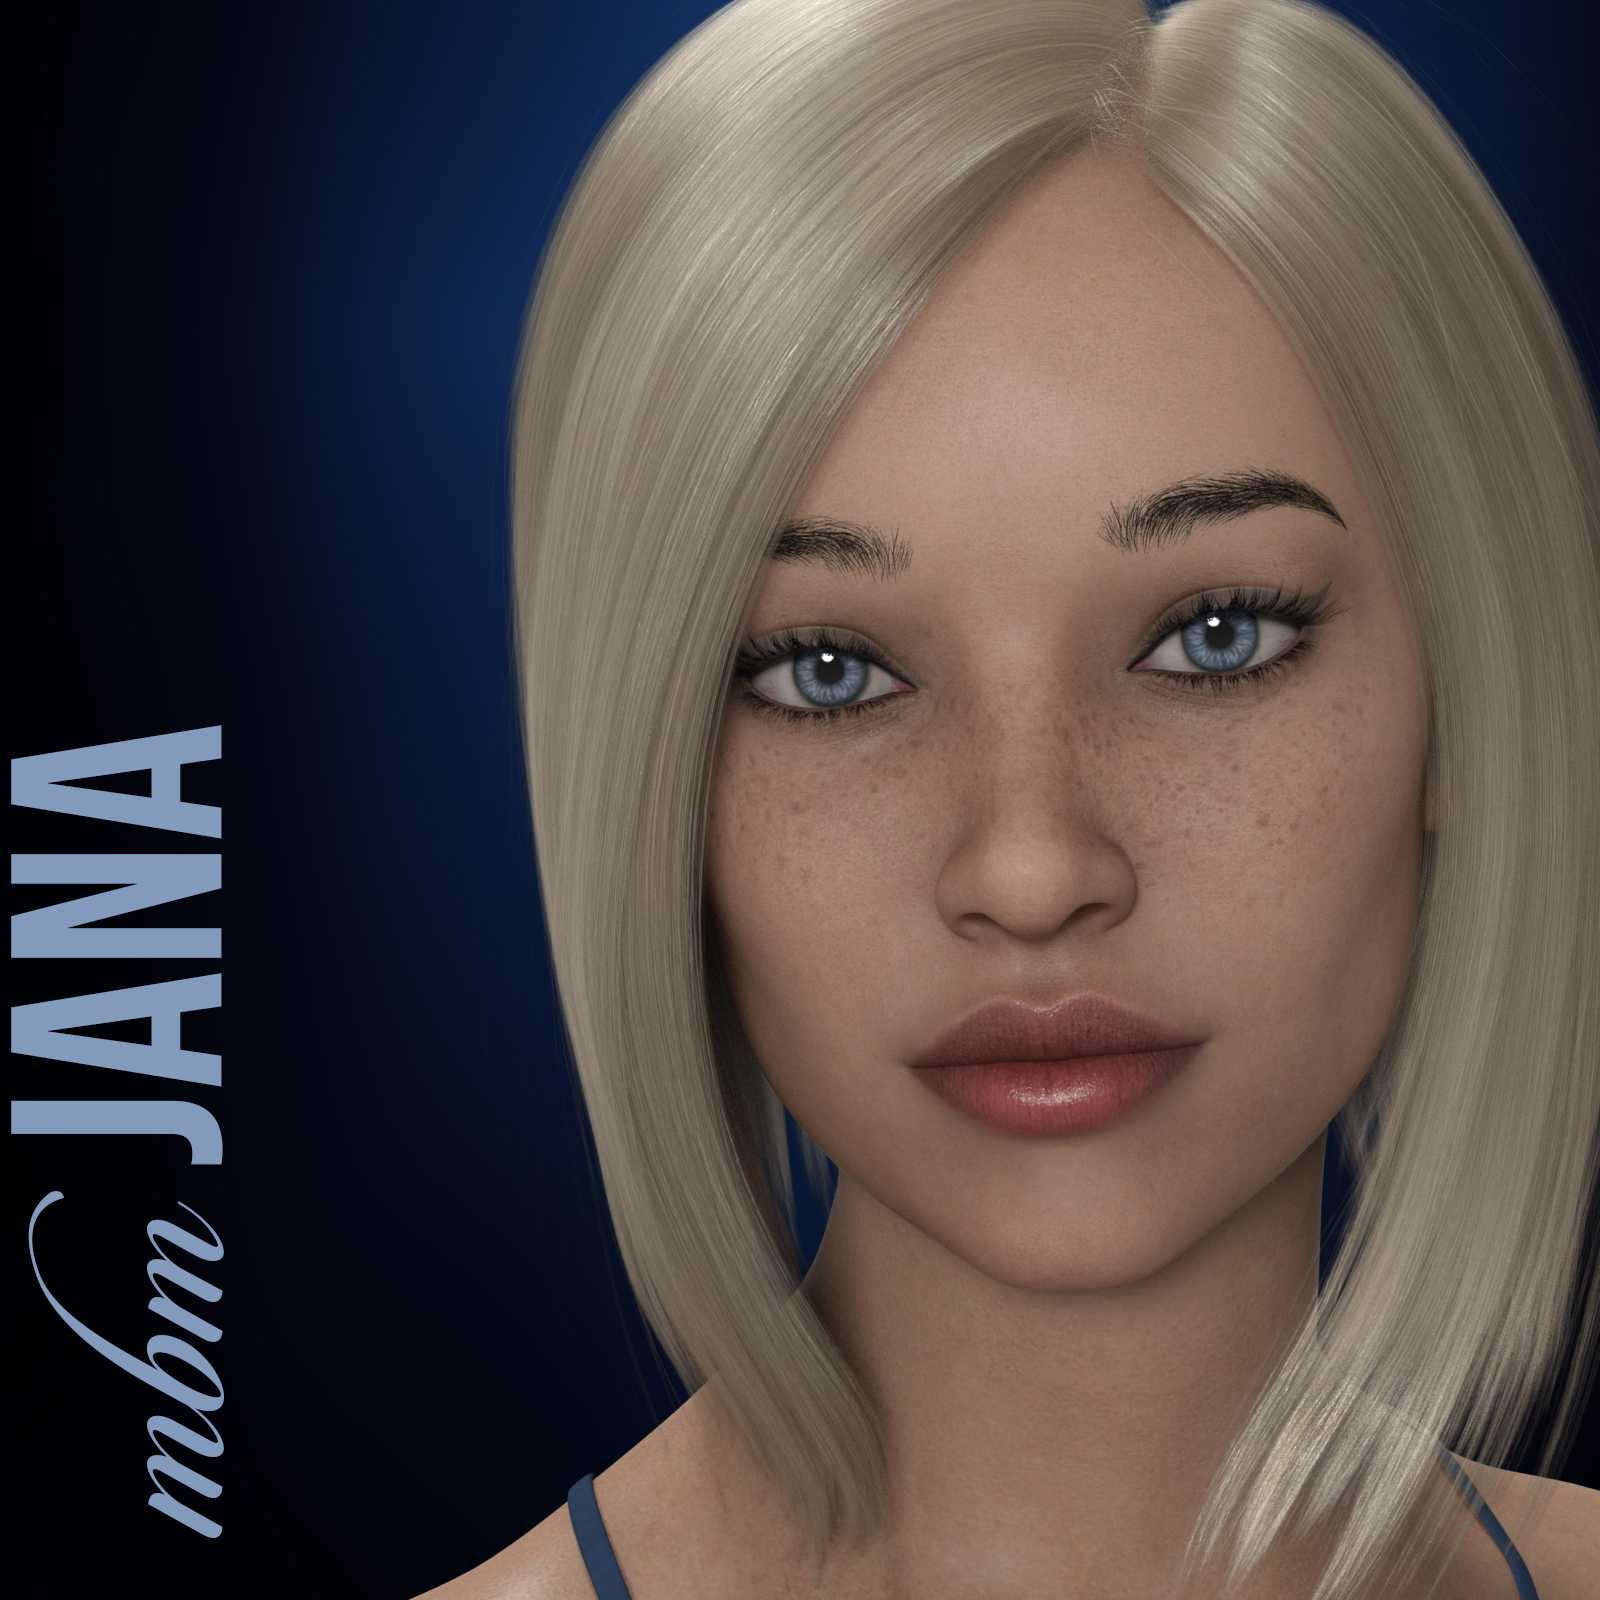 MbM Jana for Genesis 3 and 8 Female